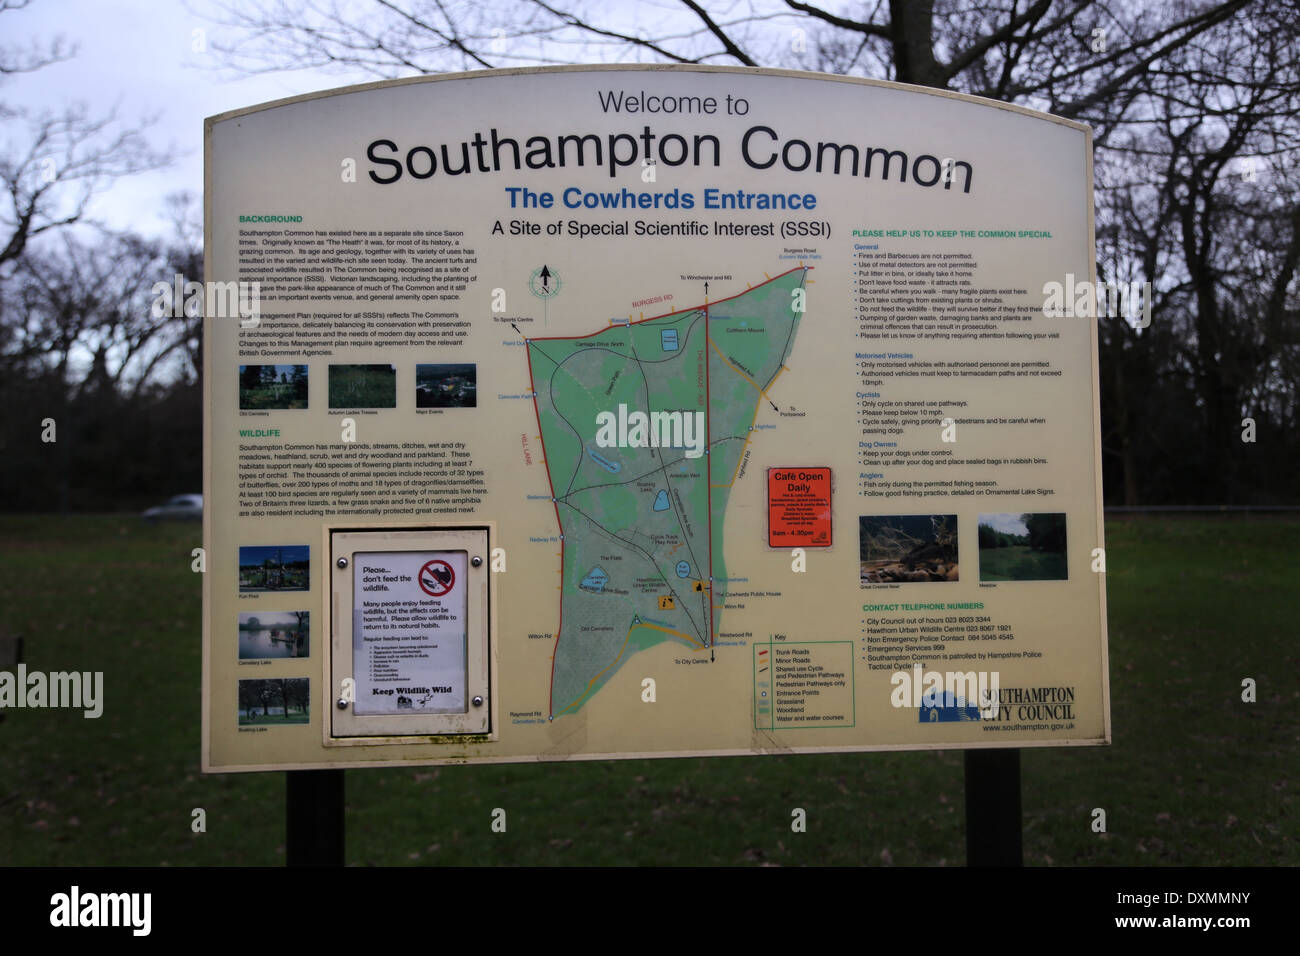 Hampshire England Southampton Common Cowherds Entrance Sign Site Of Special Scientific Interest (SSSI) - Stock Image